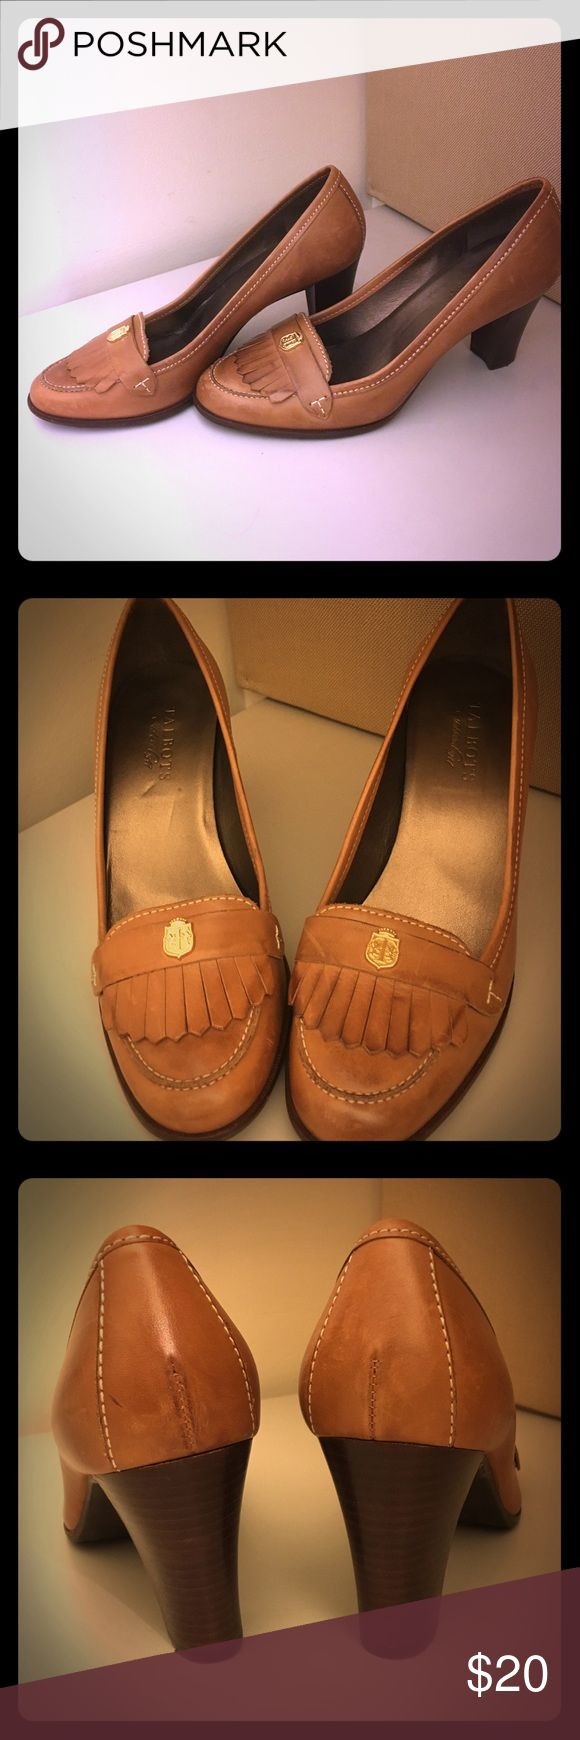 Camel Pumps Camel Pumps in good condition - gently worn. About 4 inches high and very comfortable. They're big on me so I'm selling them! Talbots Shoes Heels